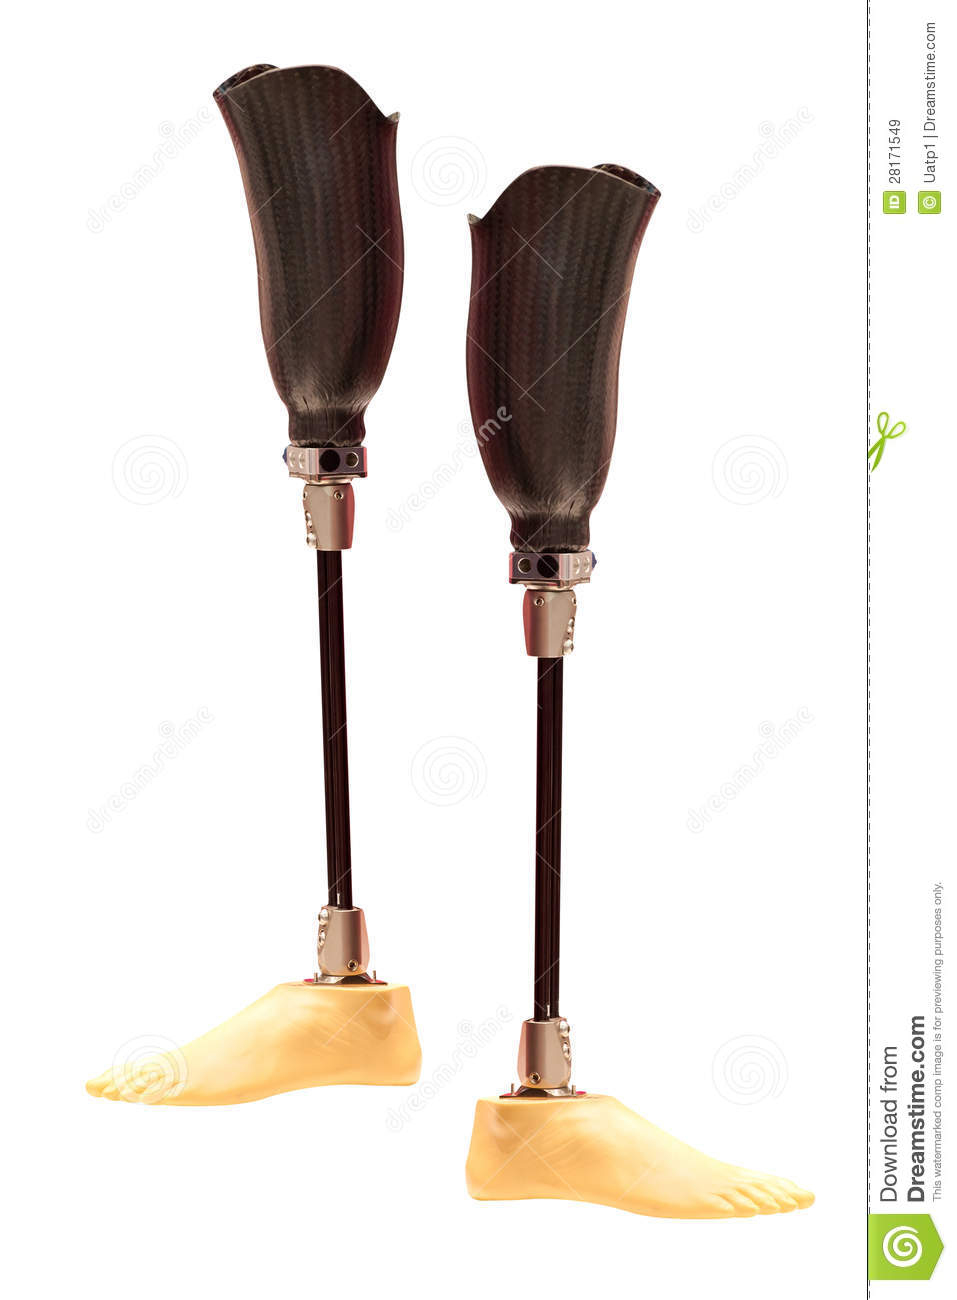 artificial limbs Artificial limbs market report categorizes the global market by product (upper extremity, lower extremity, sockets, and liners), technology (cosmetic prosthetics.